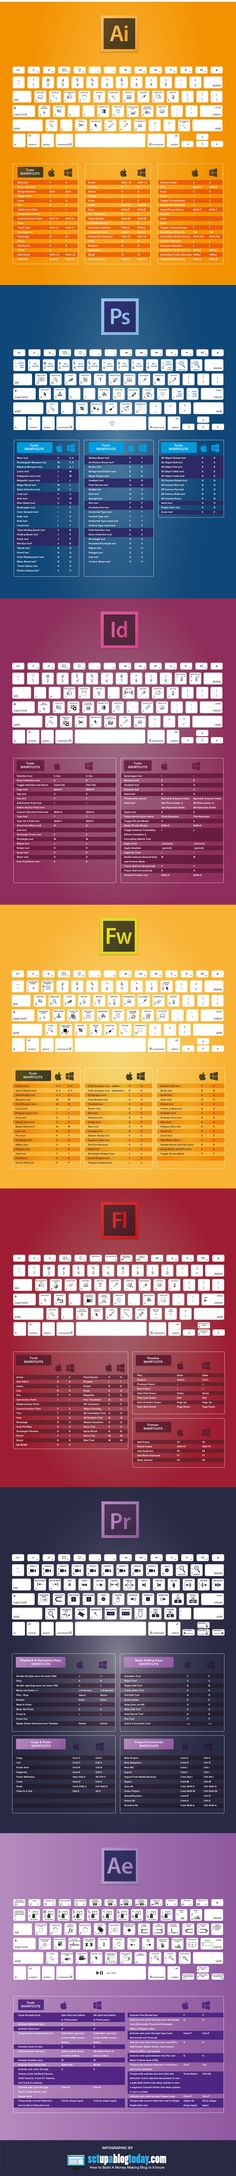 Adobe CC Keyboard Shortcuts Cheat Sheet [Infographic]